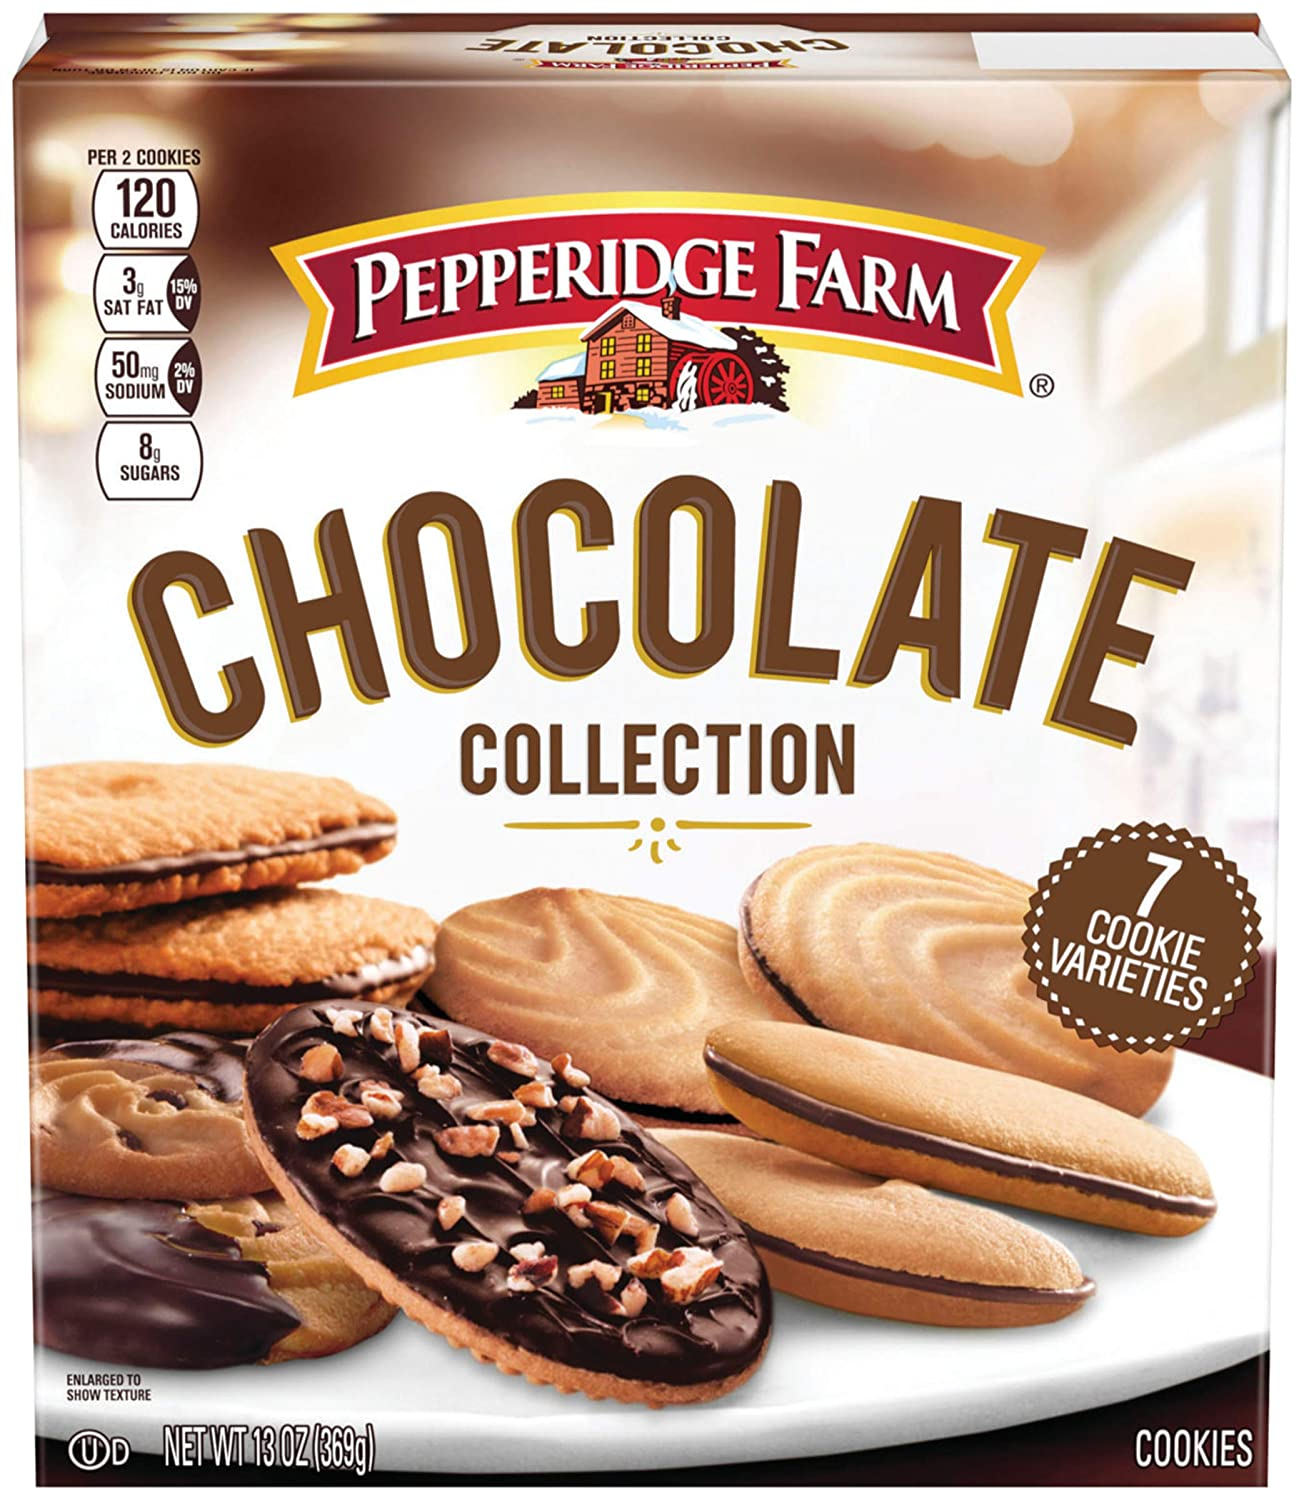 Pepperidge Farm Cookies Chocolate Collection 7 Cookie Varieties 13 Oz Box Amazon Com Grocery Gourmet Food